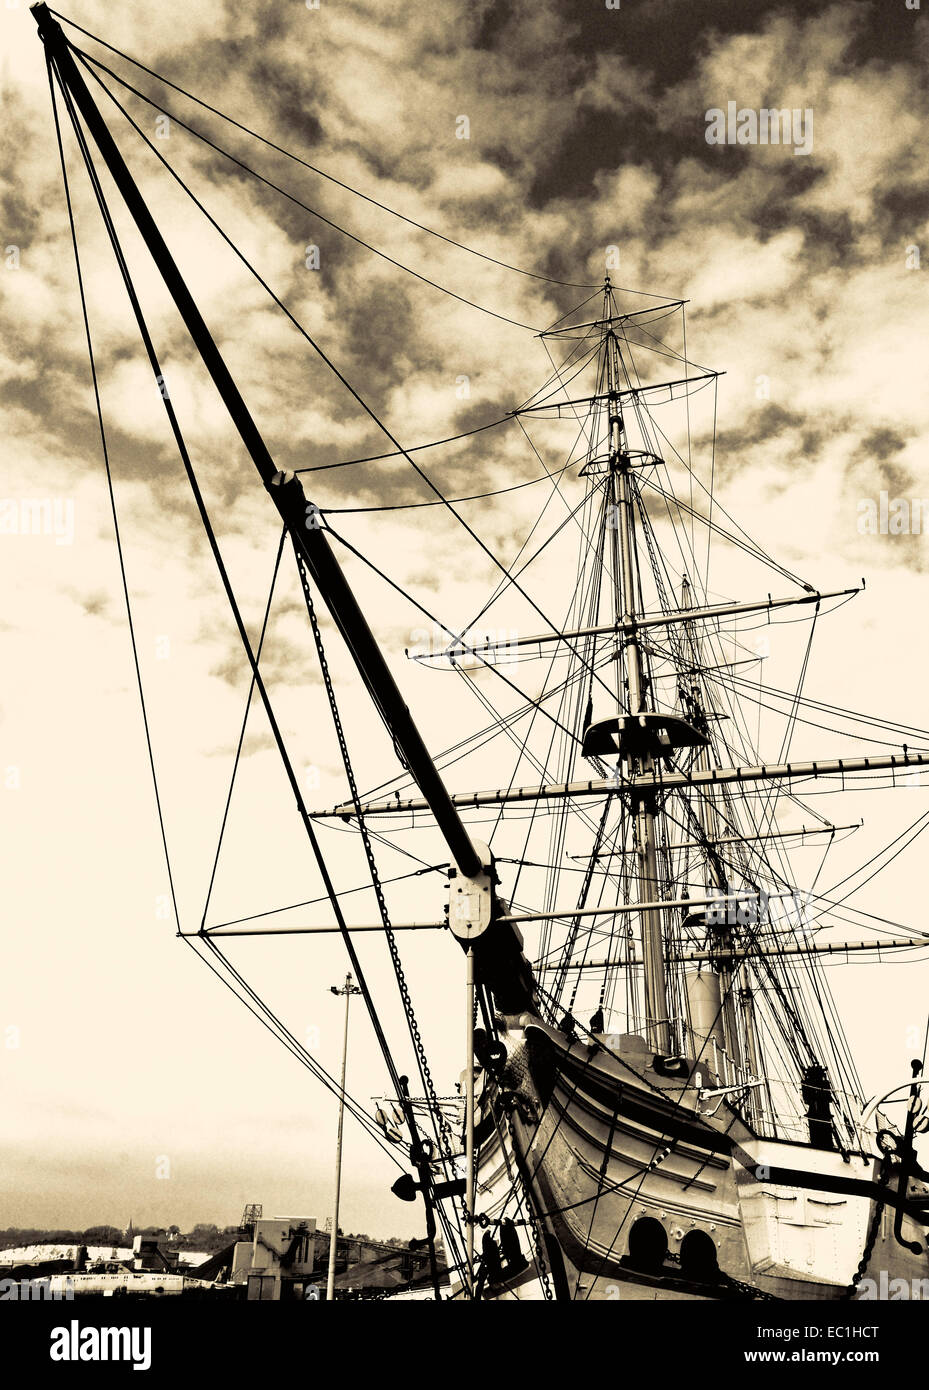 HMS Gannet, Victorian warship from 1866, restored and exhibited in Chatham Historic Shipyard, Kent - Stock Image